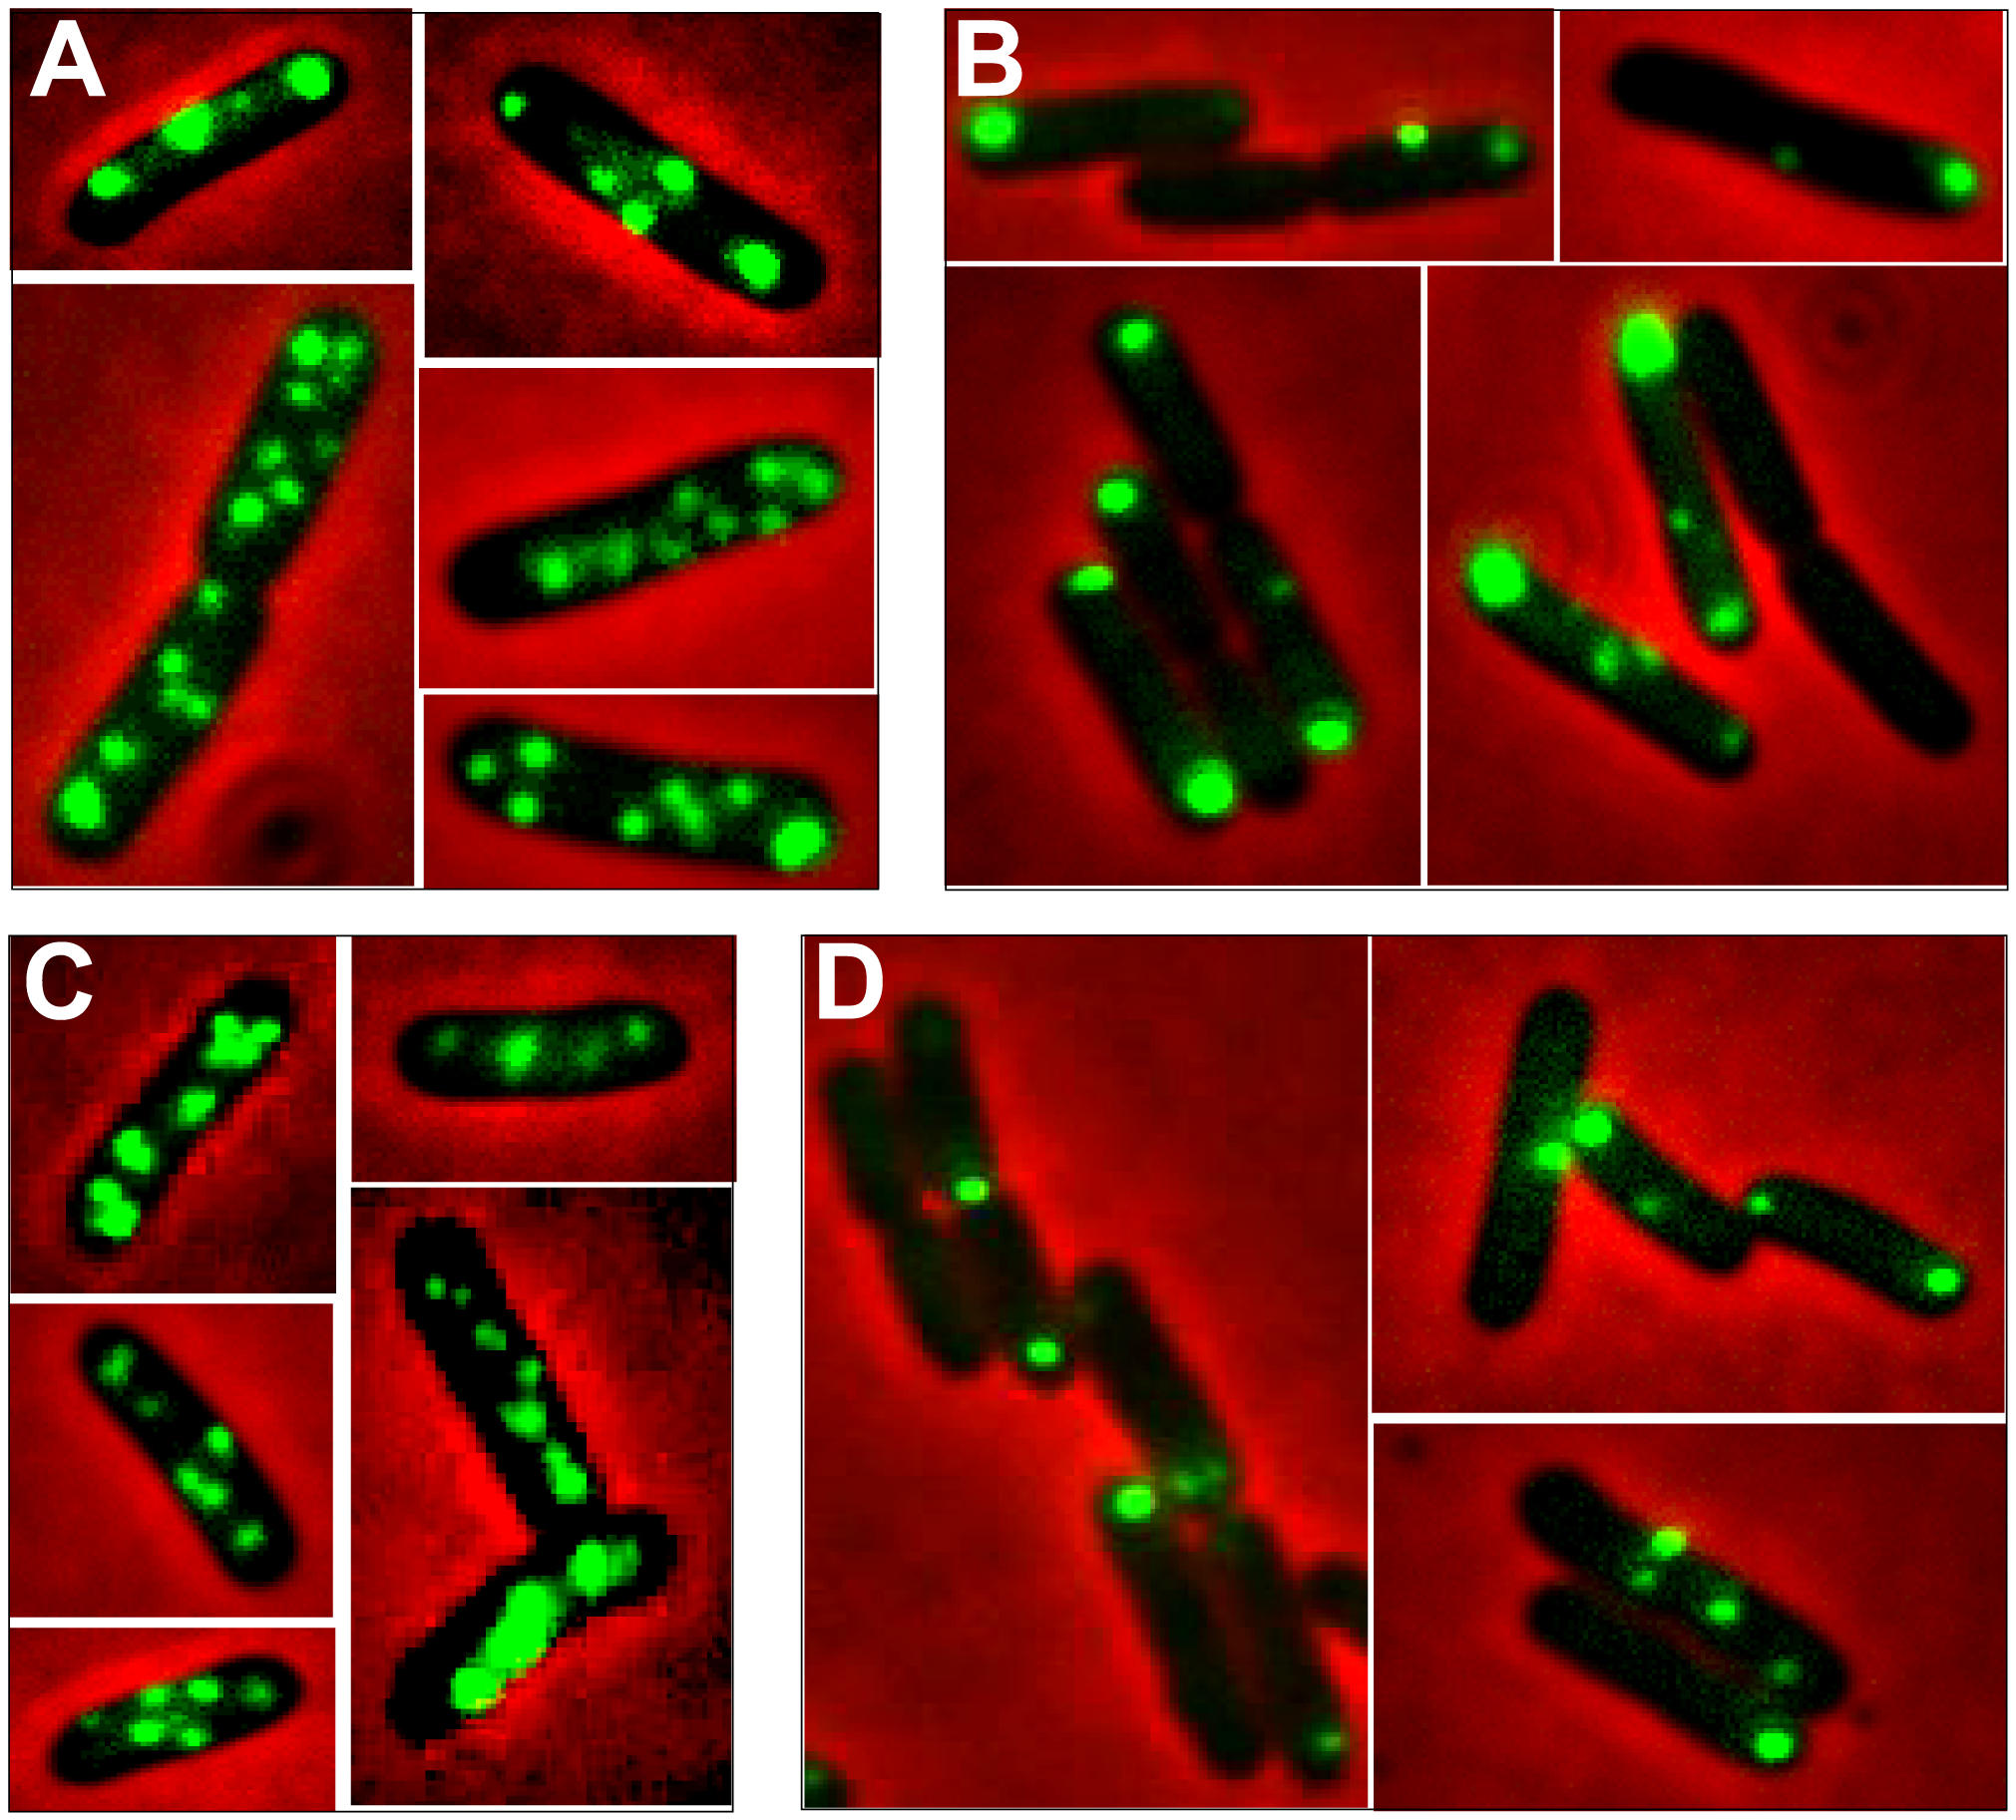 Localization of plasmid R388 and derivatives in live <i>E. coli</i> cells using a <i>parS</i>/GFP-ParB system.